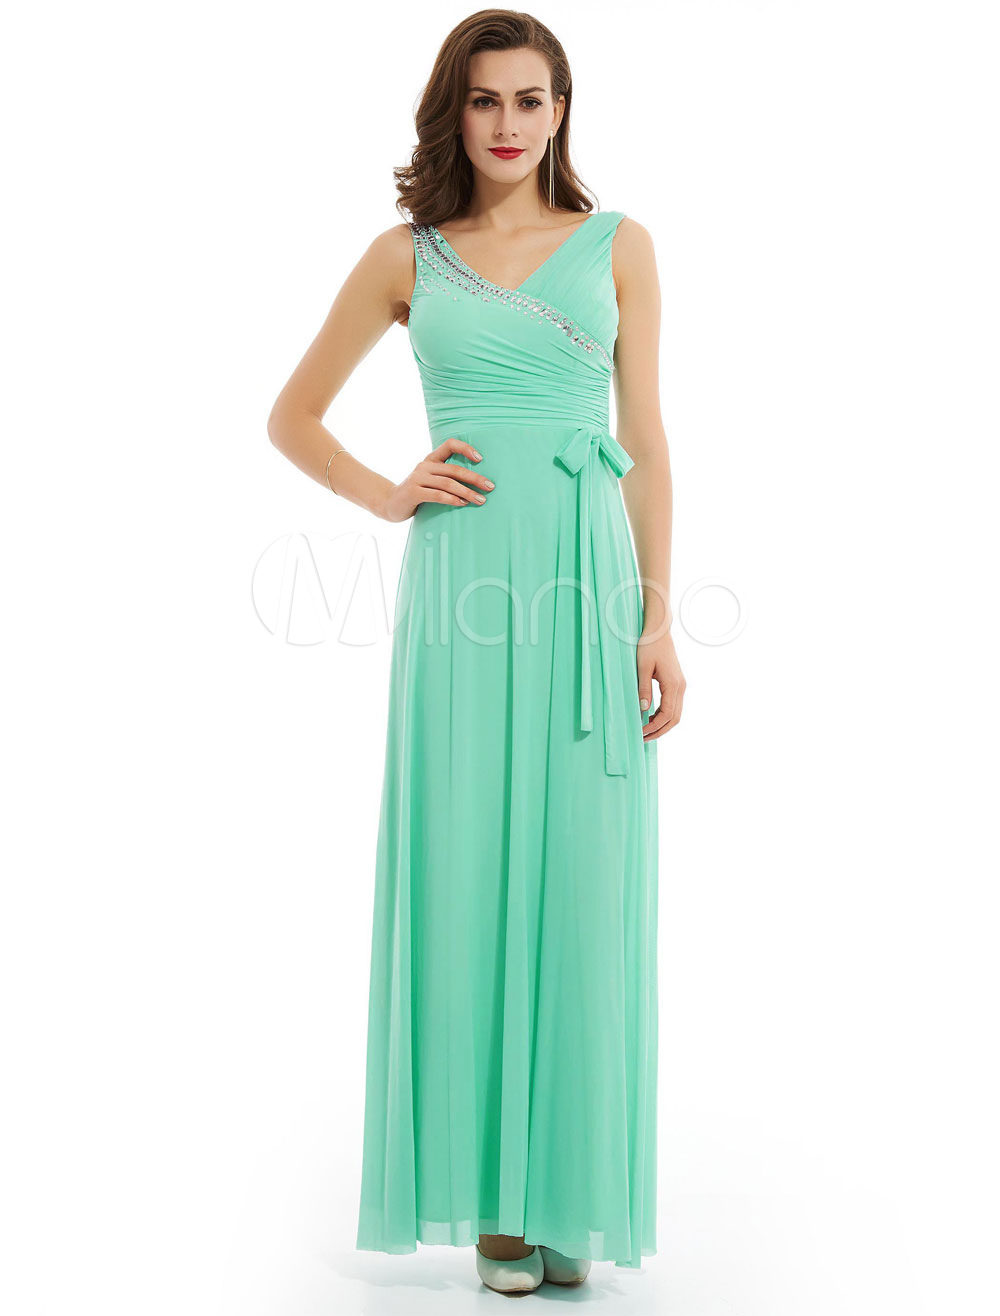 Buy Prom Dresses Long Mint Green V Neck Beading Ribbon Bow Chiffon Floor Length Formal Party Dress for $65.99 in Milanoo store